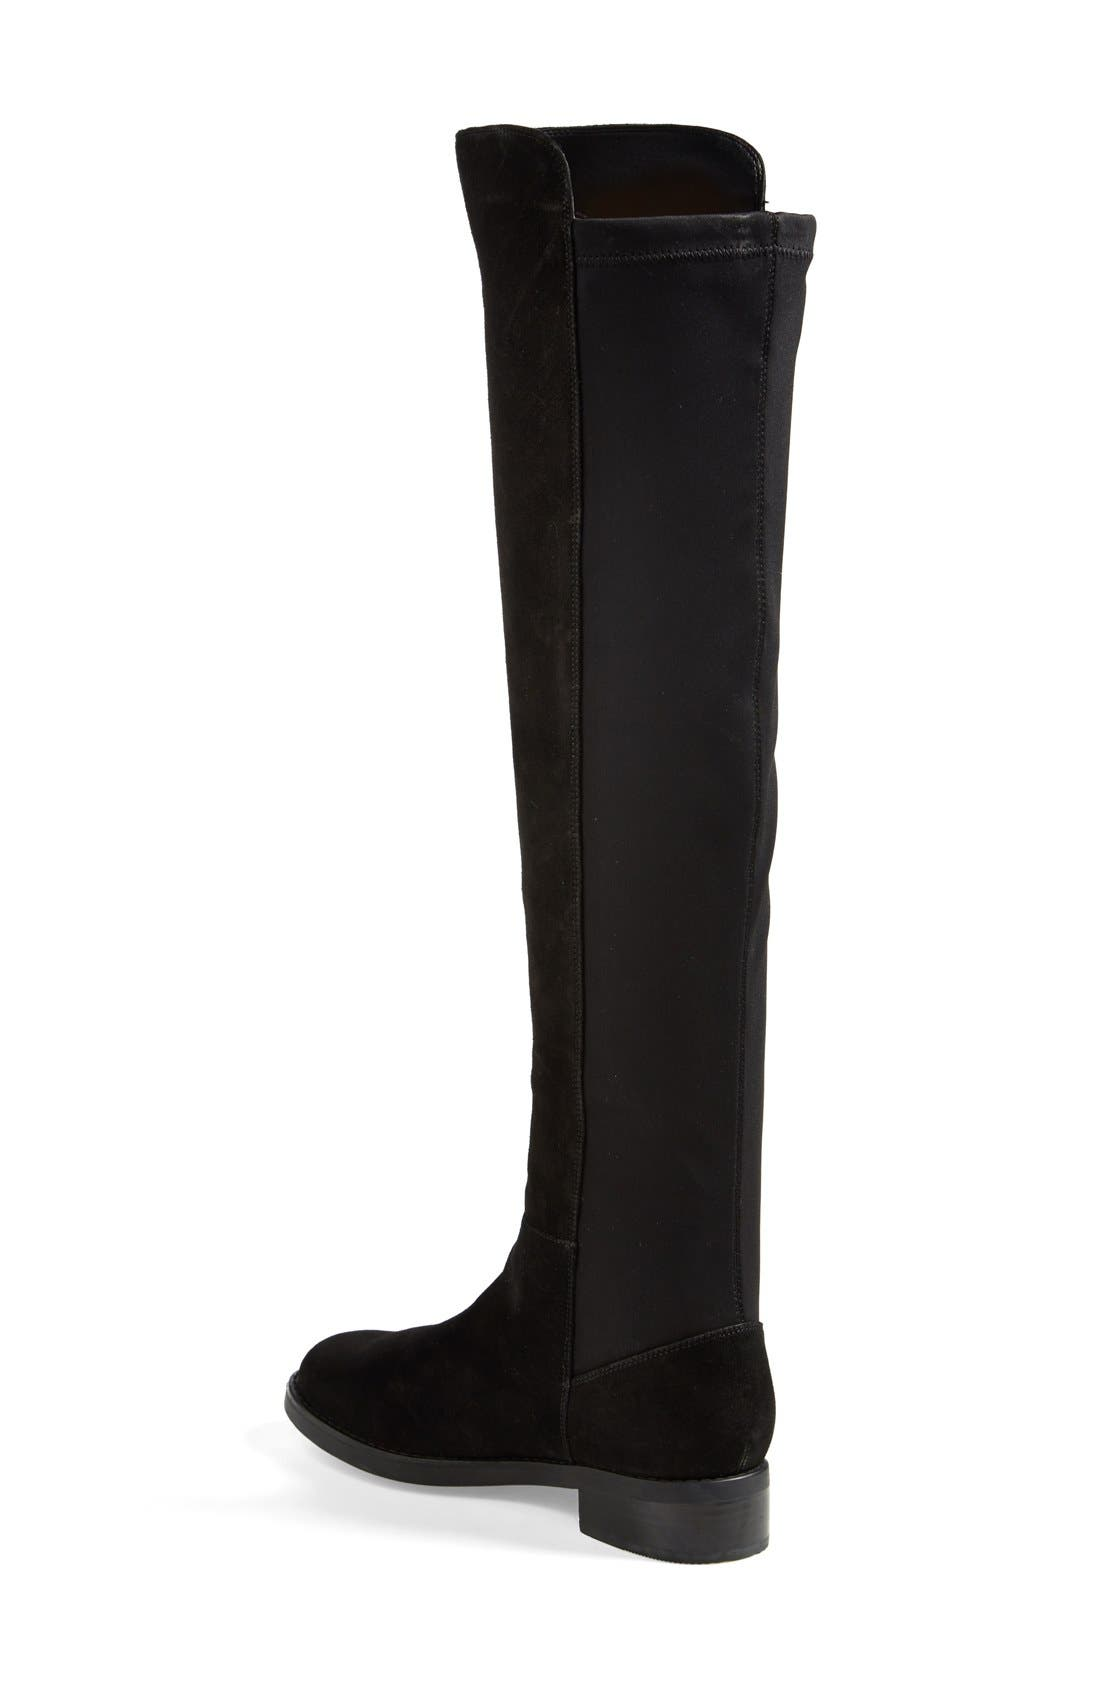 Alternate Image 2  - Blondo 'Eden' Over the Knee Waterproof Boot (Women)